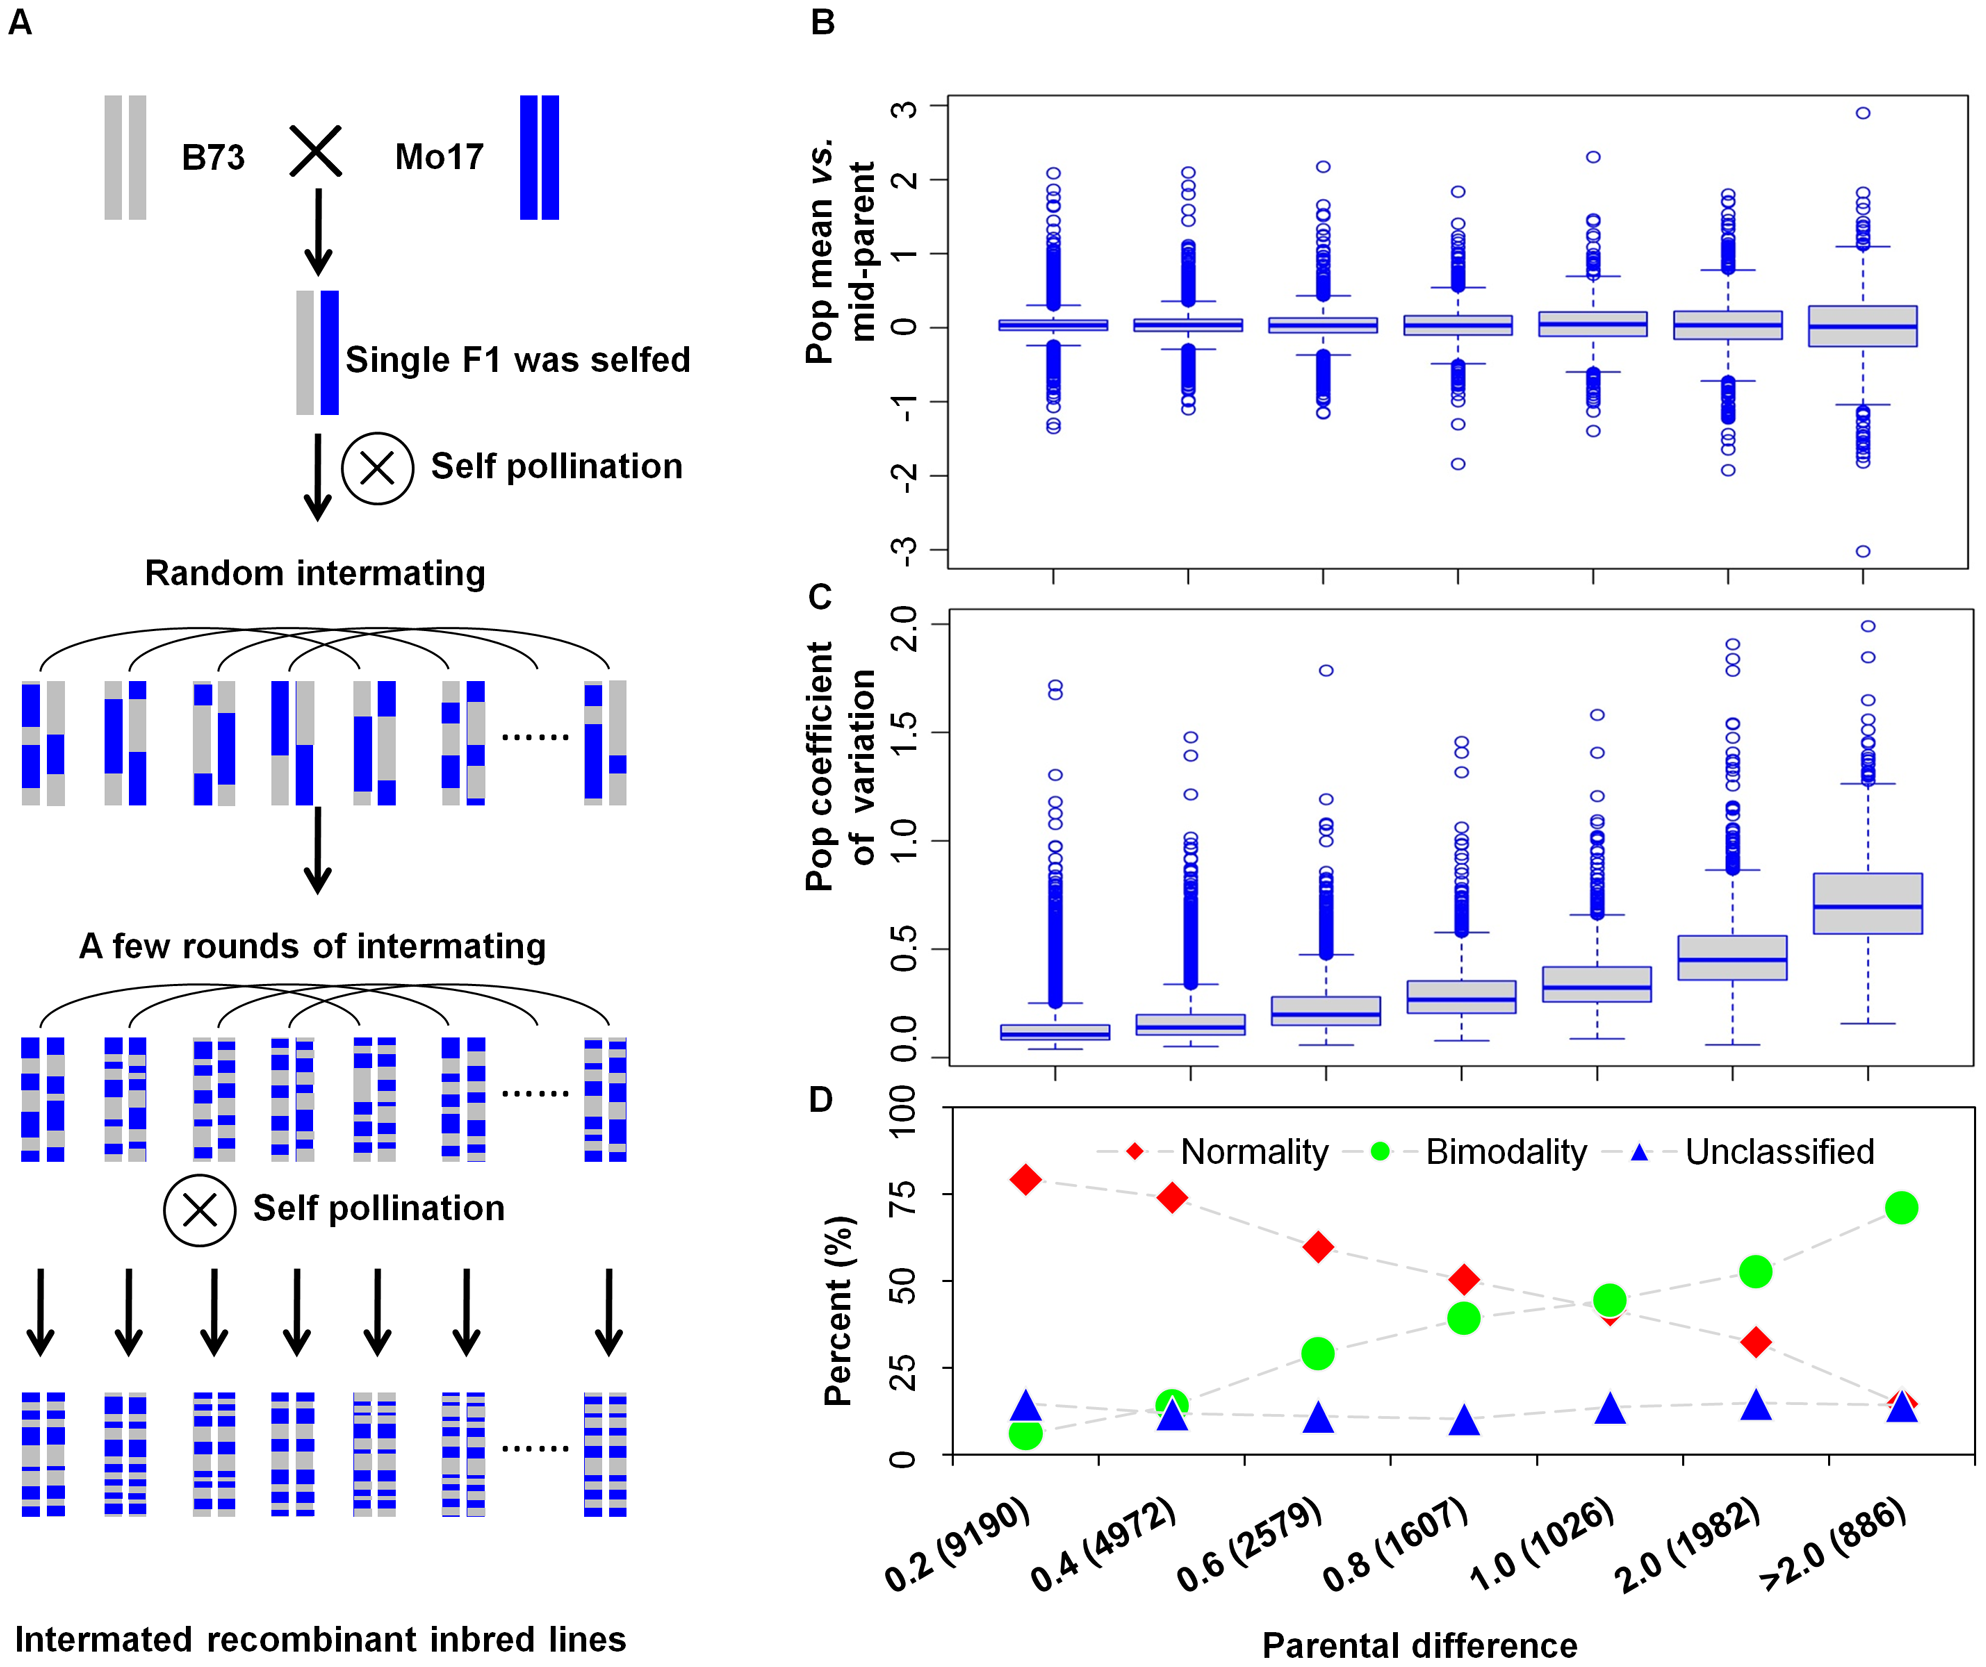 The intermated B73×Mo17 recombinant inbred lines (IBM RIL) and the relationship between expression variation in the RILs and expression fold change in the parents.